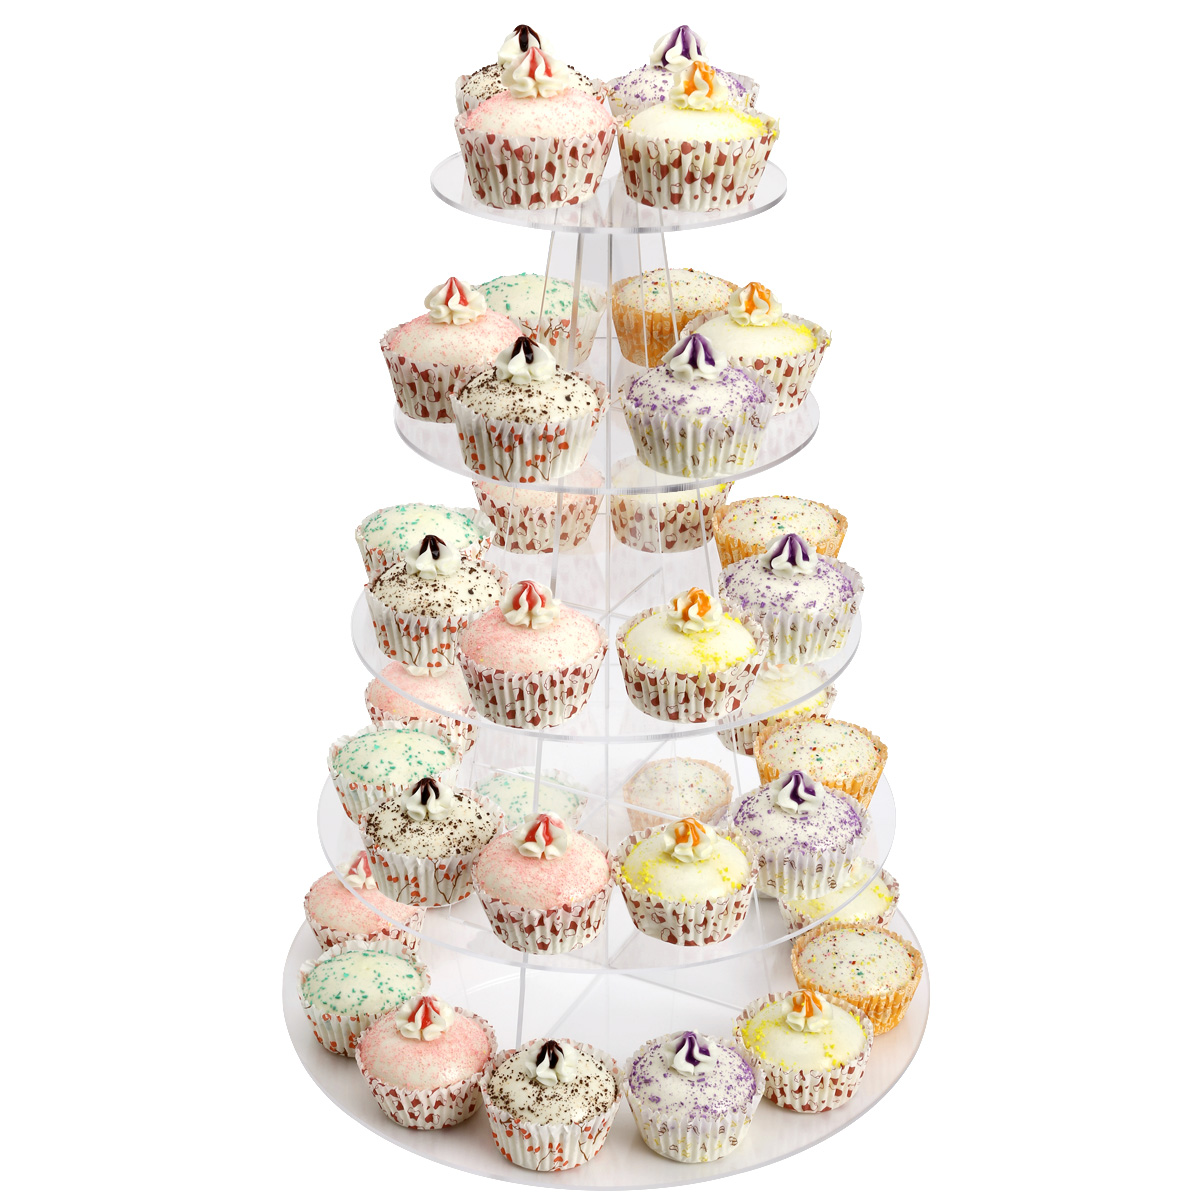 3-7 Tier Crystal Clear Acrylic Round Cupcake Stand Hotle Wedding ...